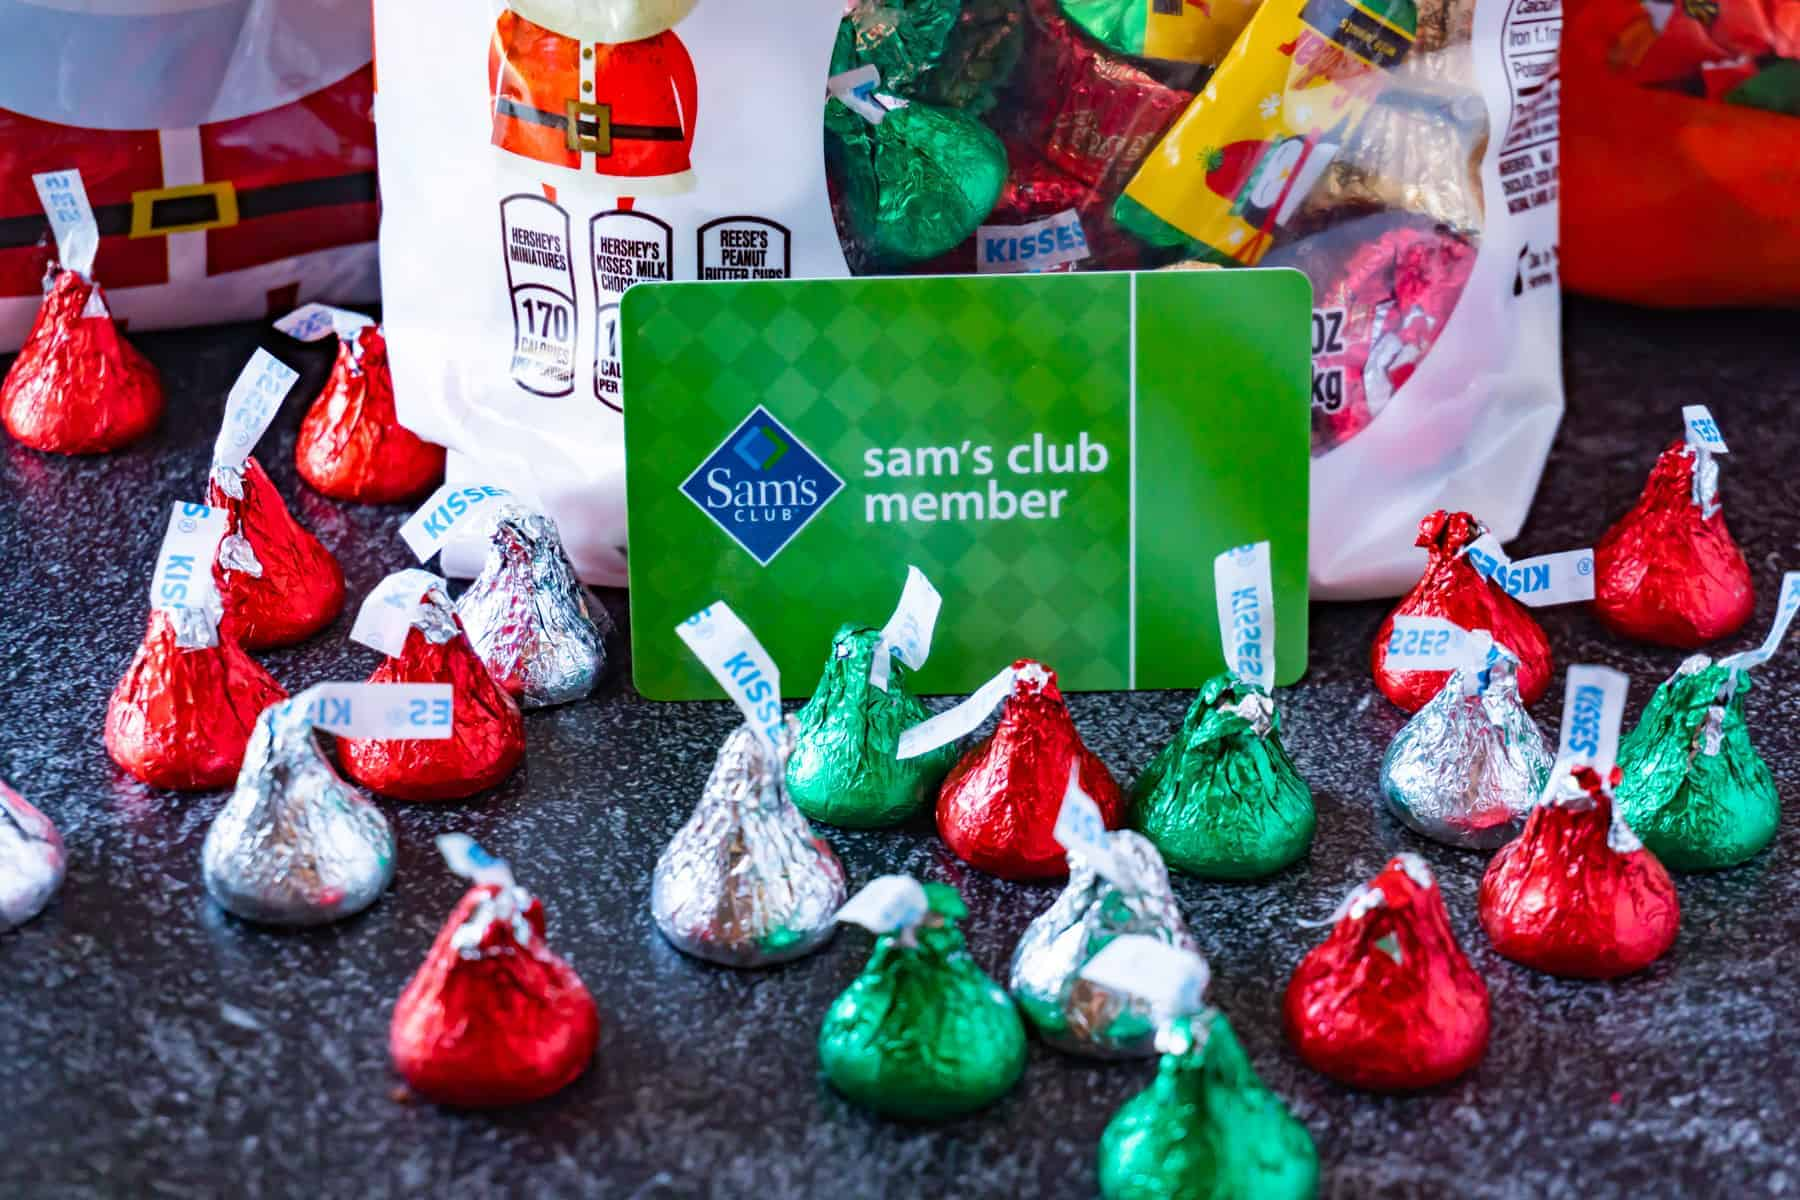 sam's club member card with chrismtas candy kisses around it